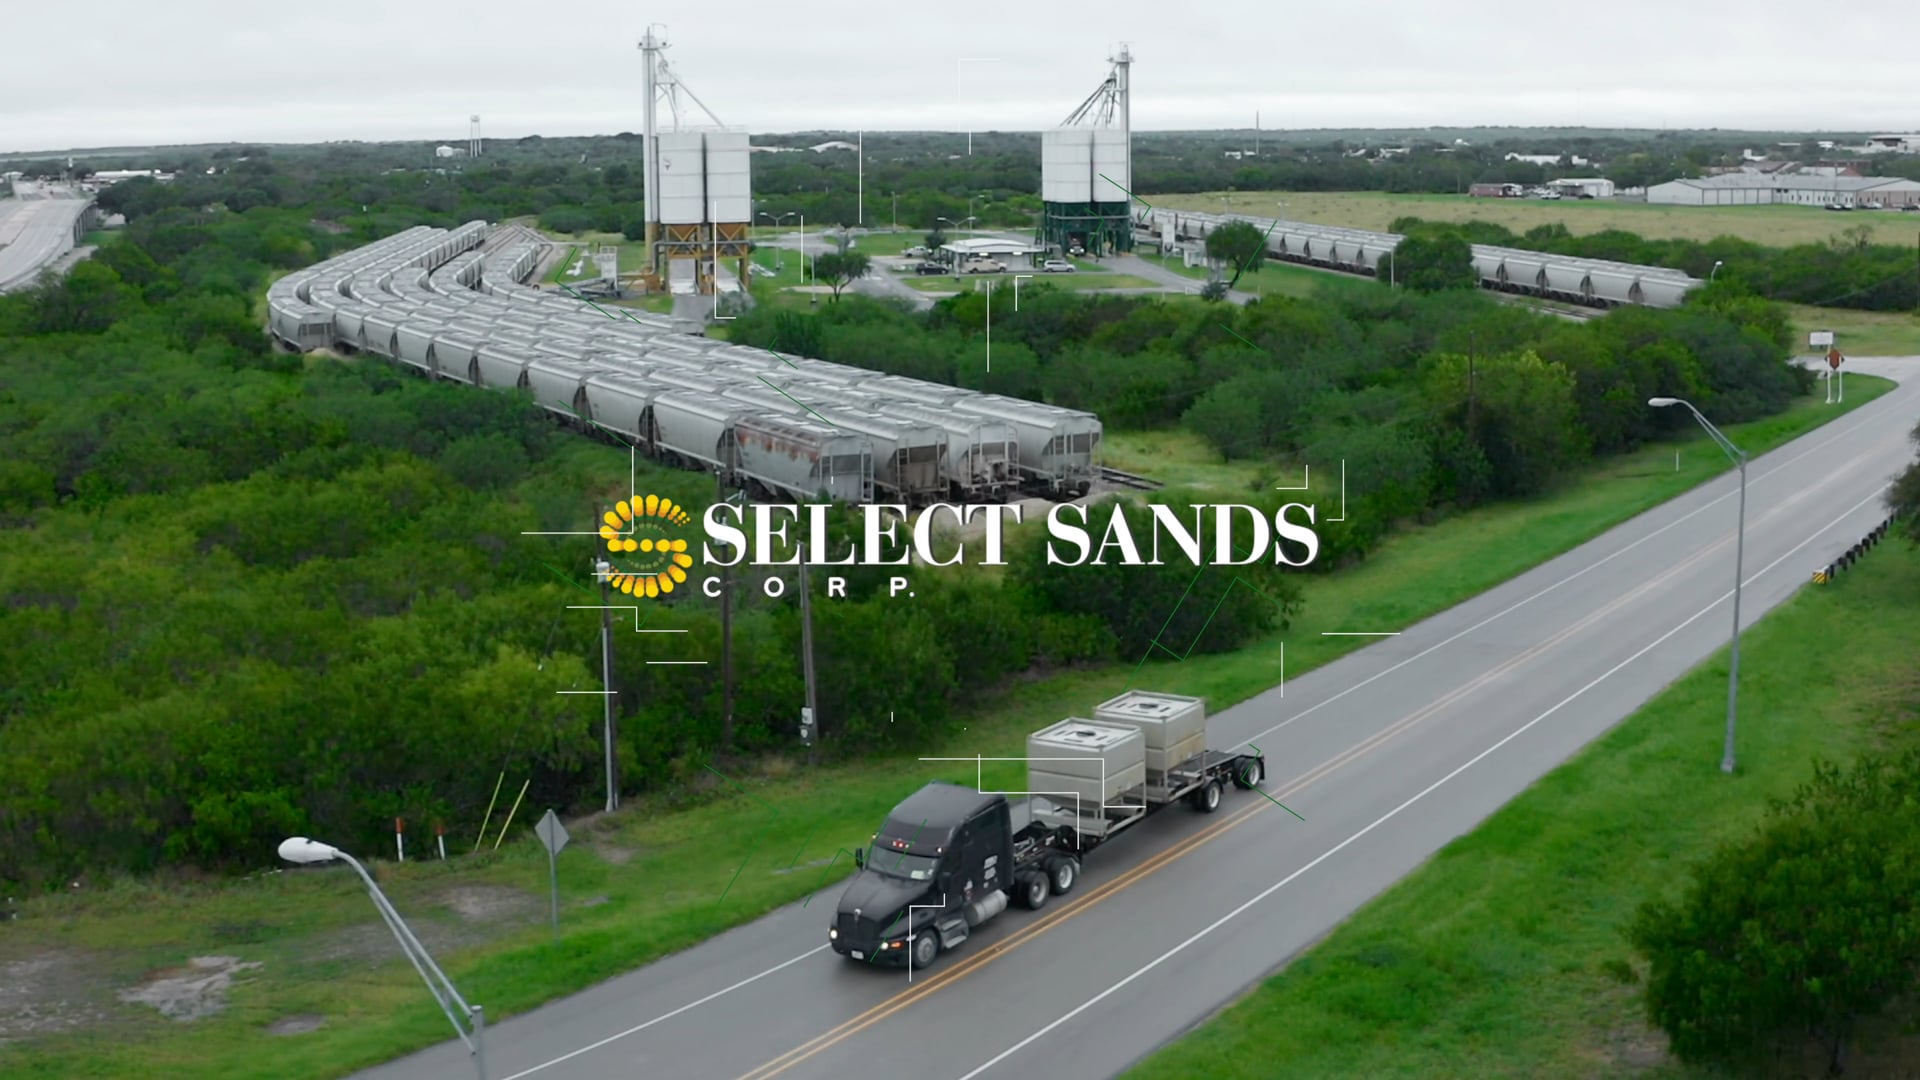 Select Sands